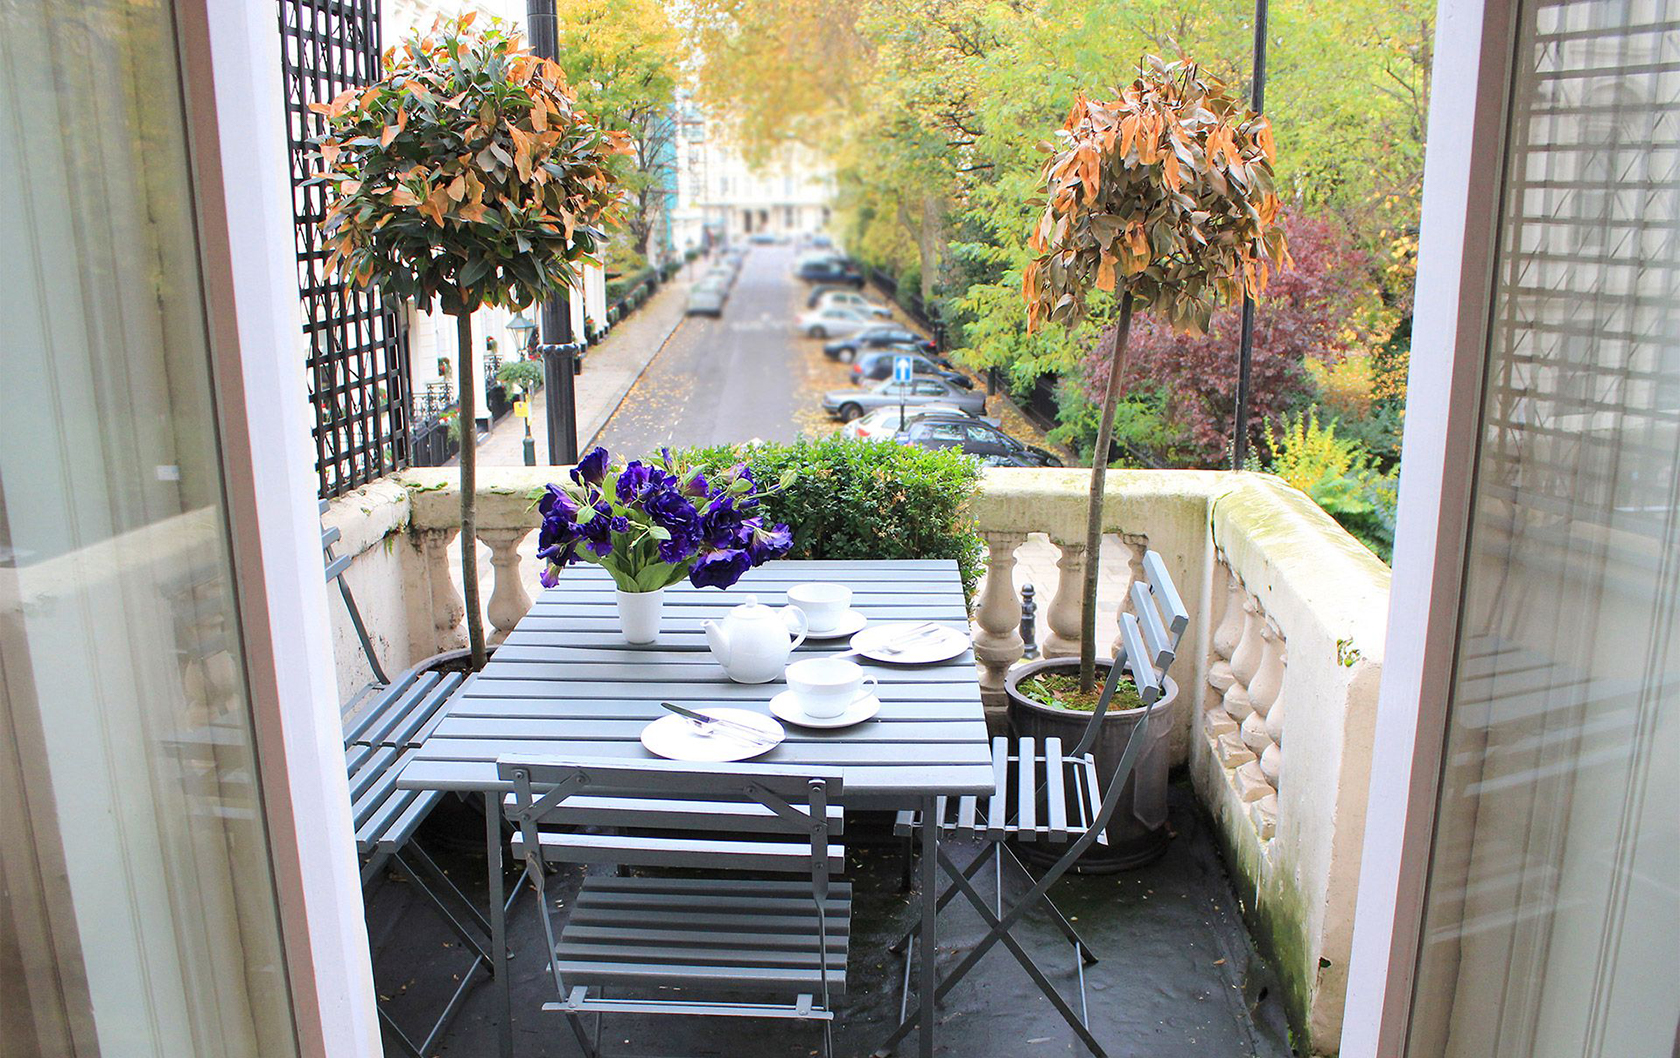 Classic London charm overlooking a garden square from the Salisbury